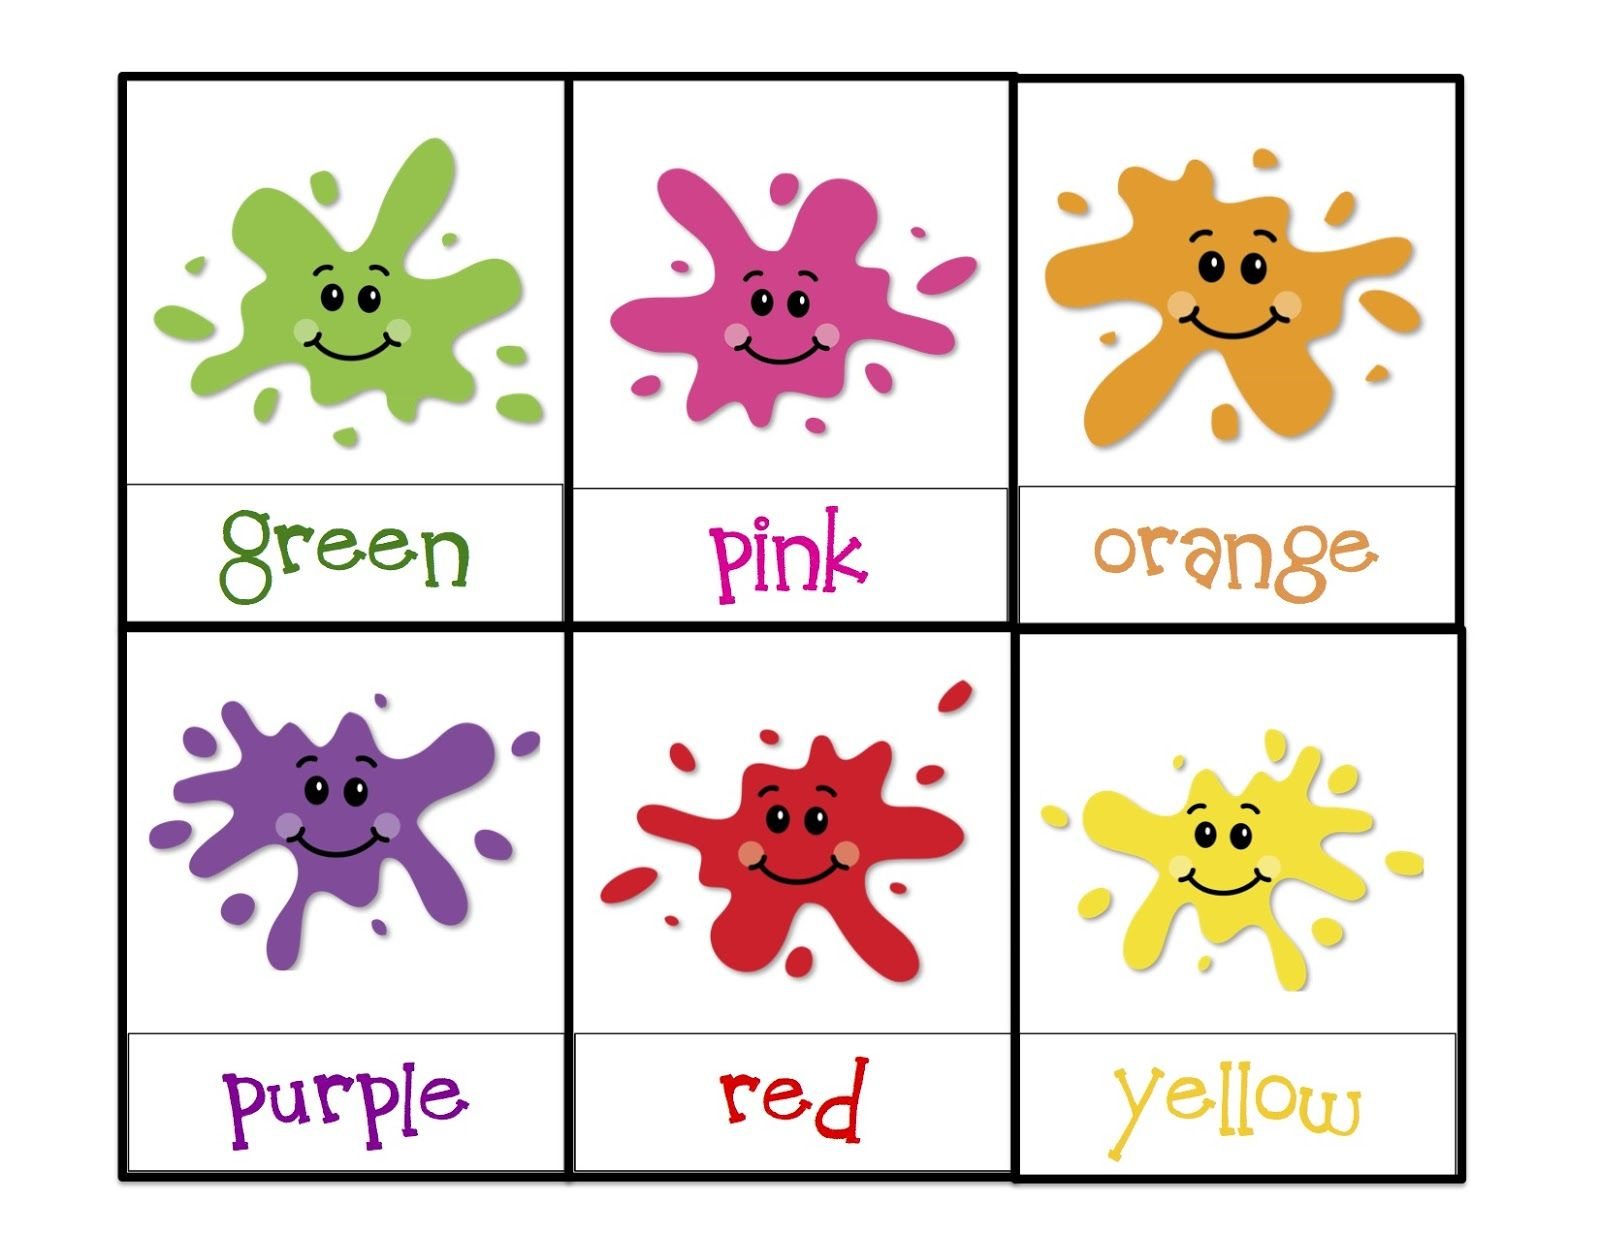 toddler color learning printables learning colors printable - Learning Colors Worksheets For Preschoolers